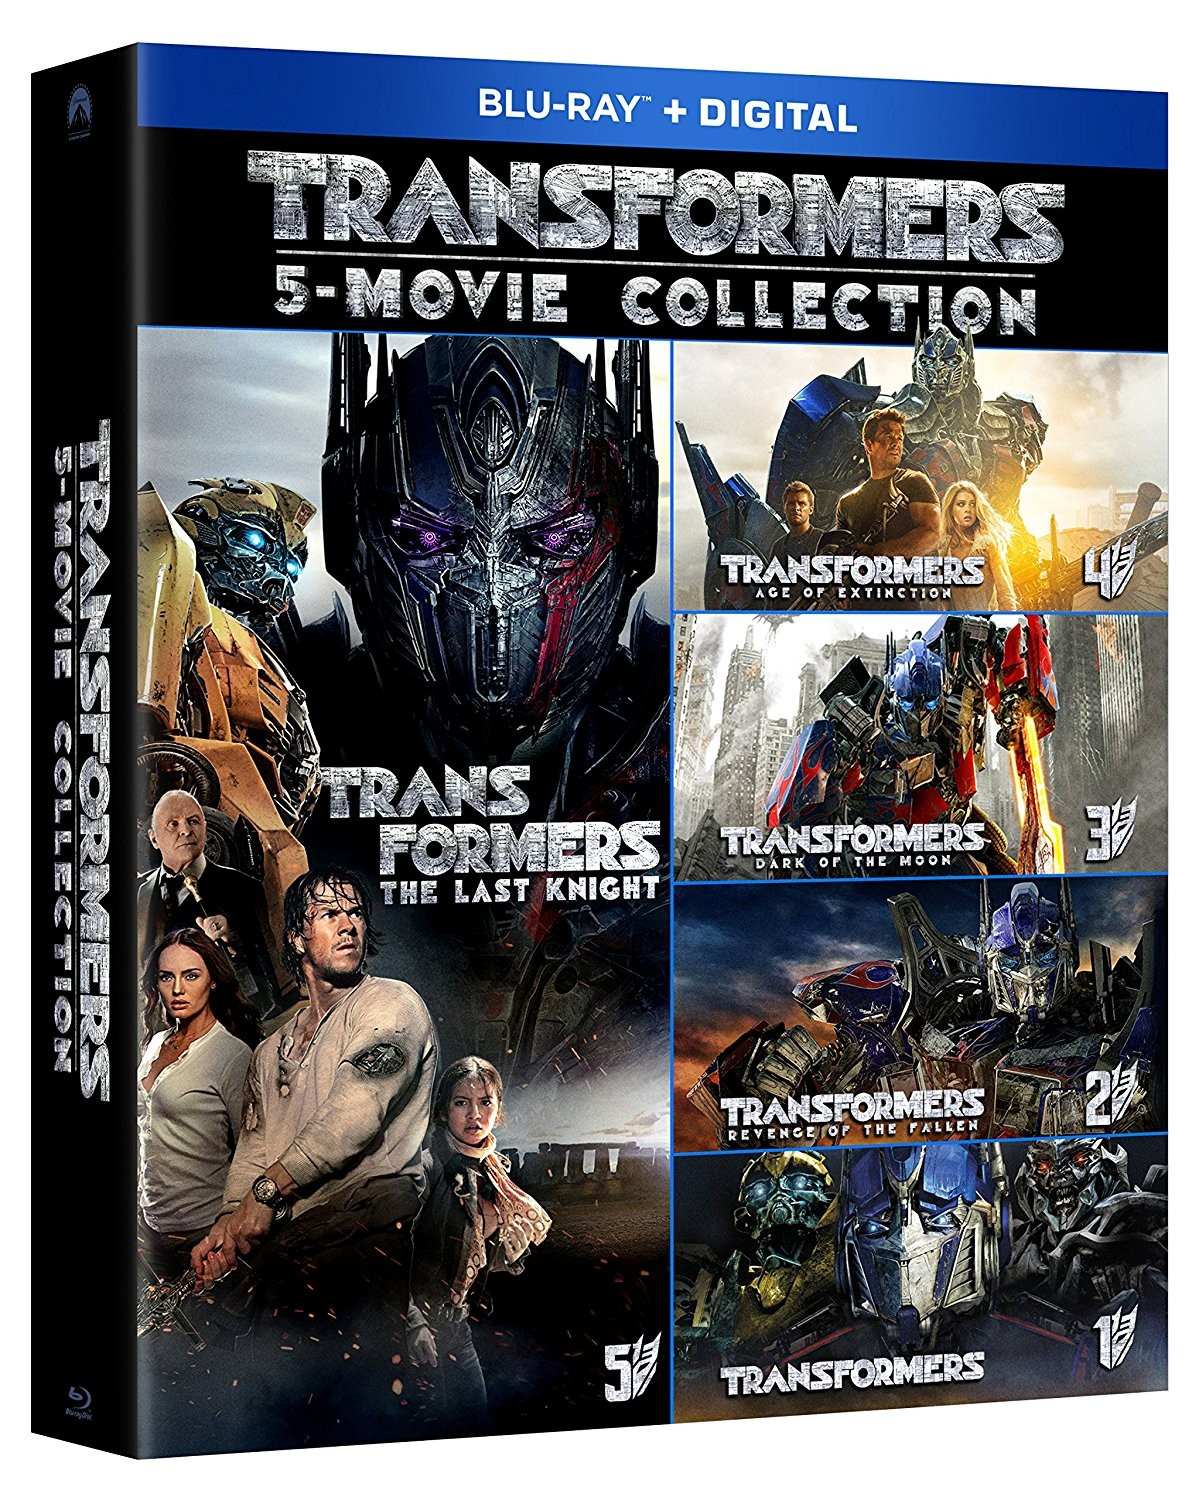 Transformers News: Blu-Ray Boxset of All Five Transformers Movies for $29.99